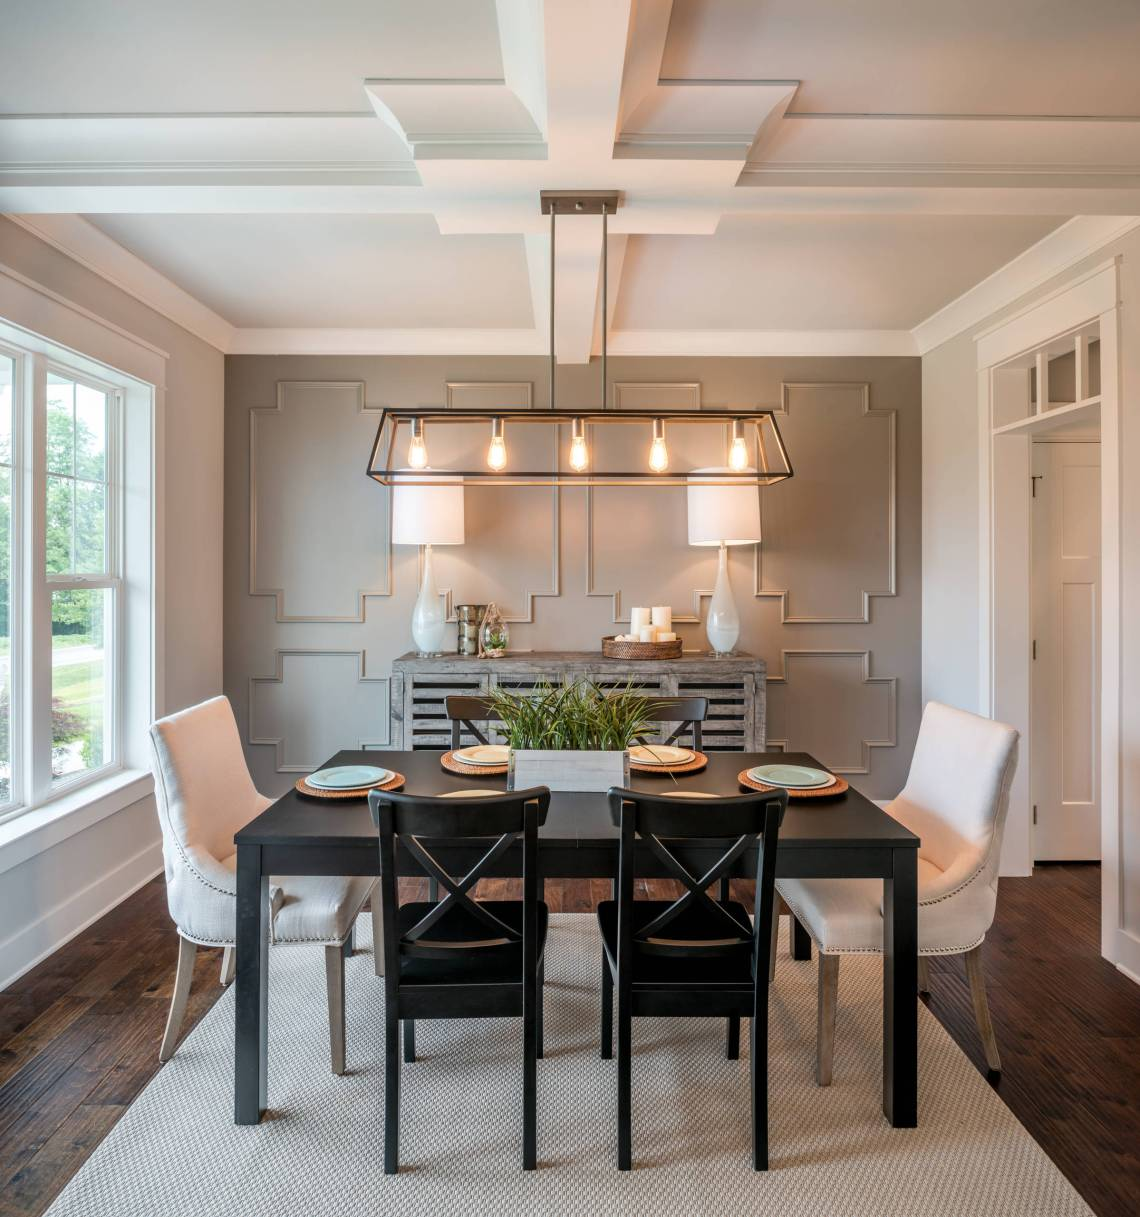 75 Beautiful Farmhouse Dining Room Pictures Ideas July 2021 Houzz